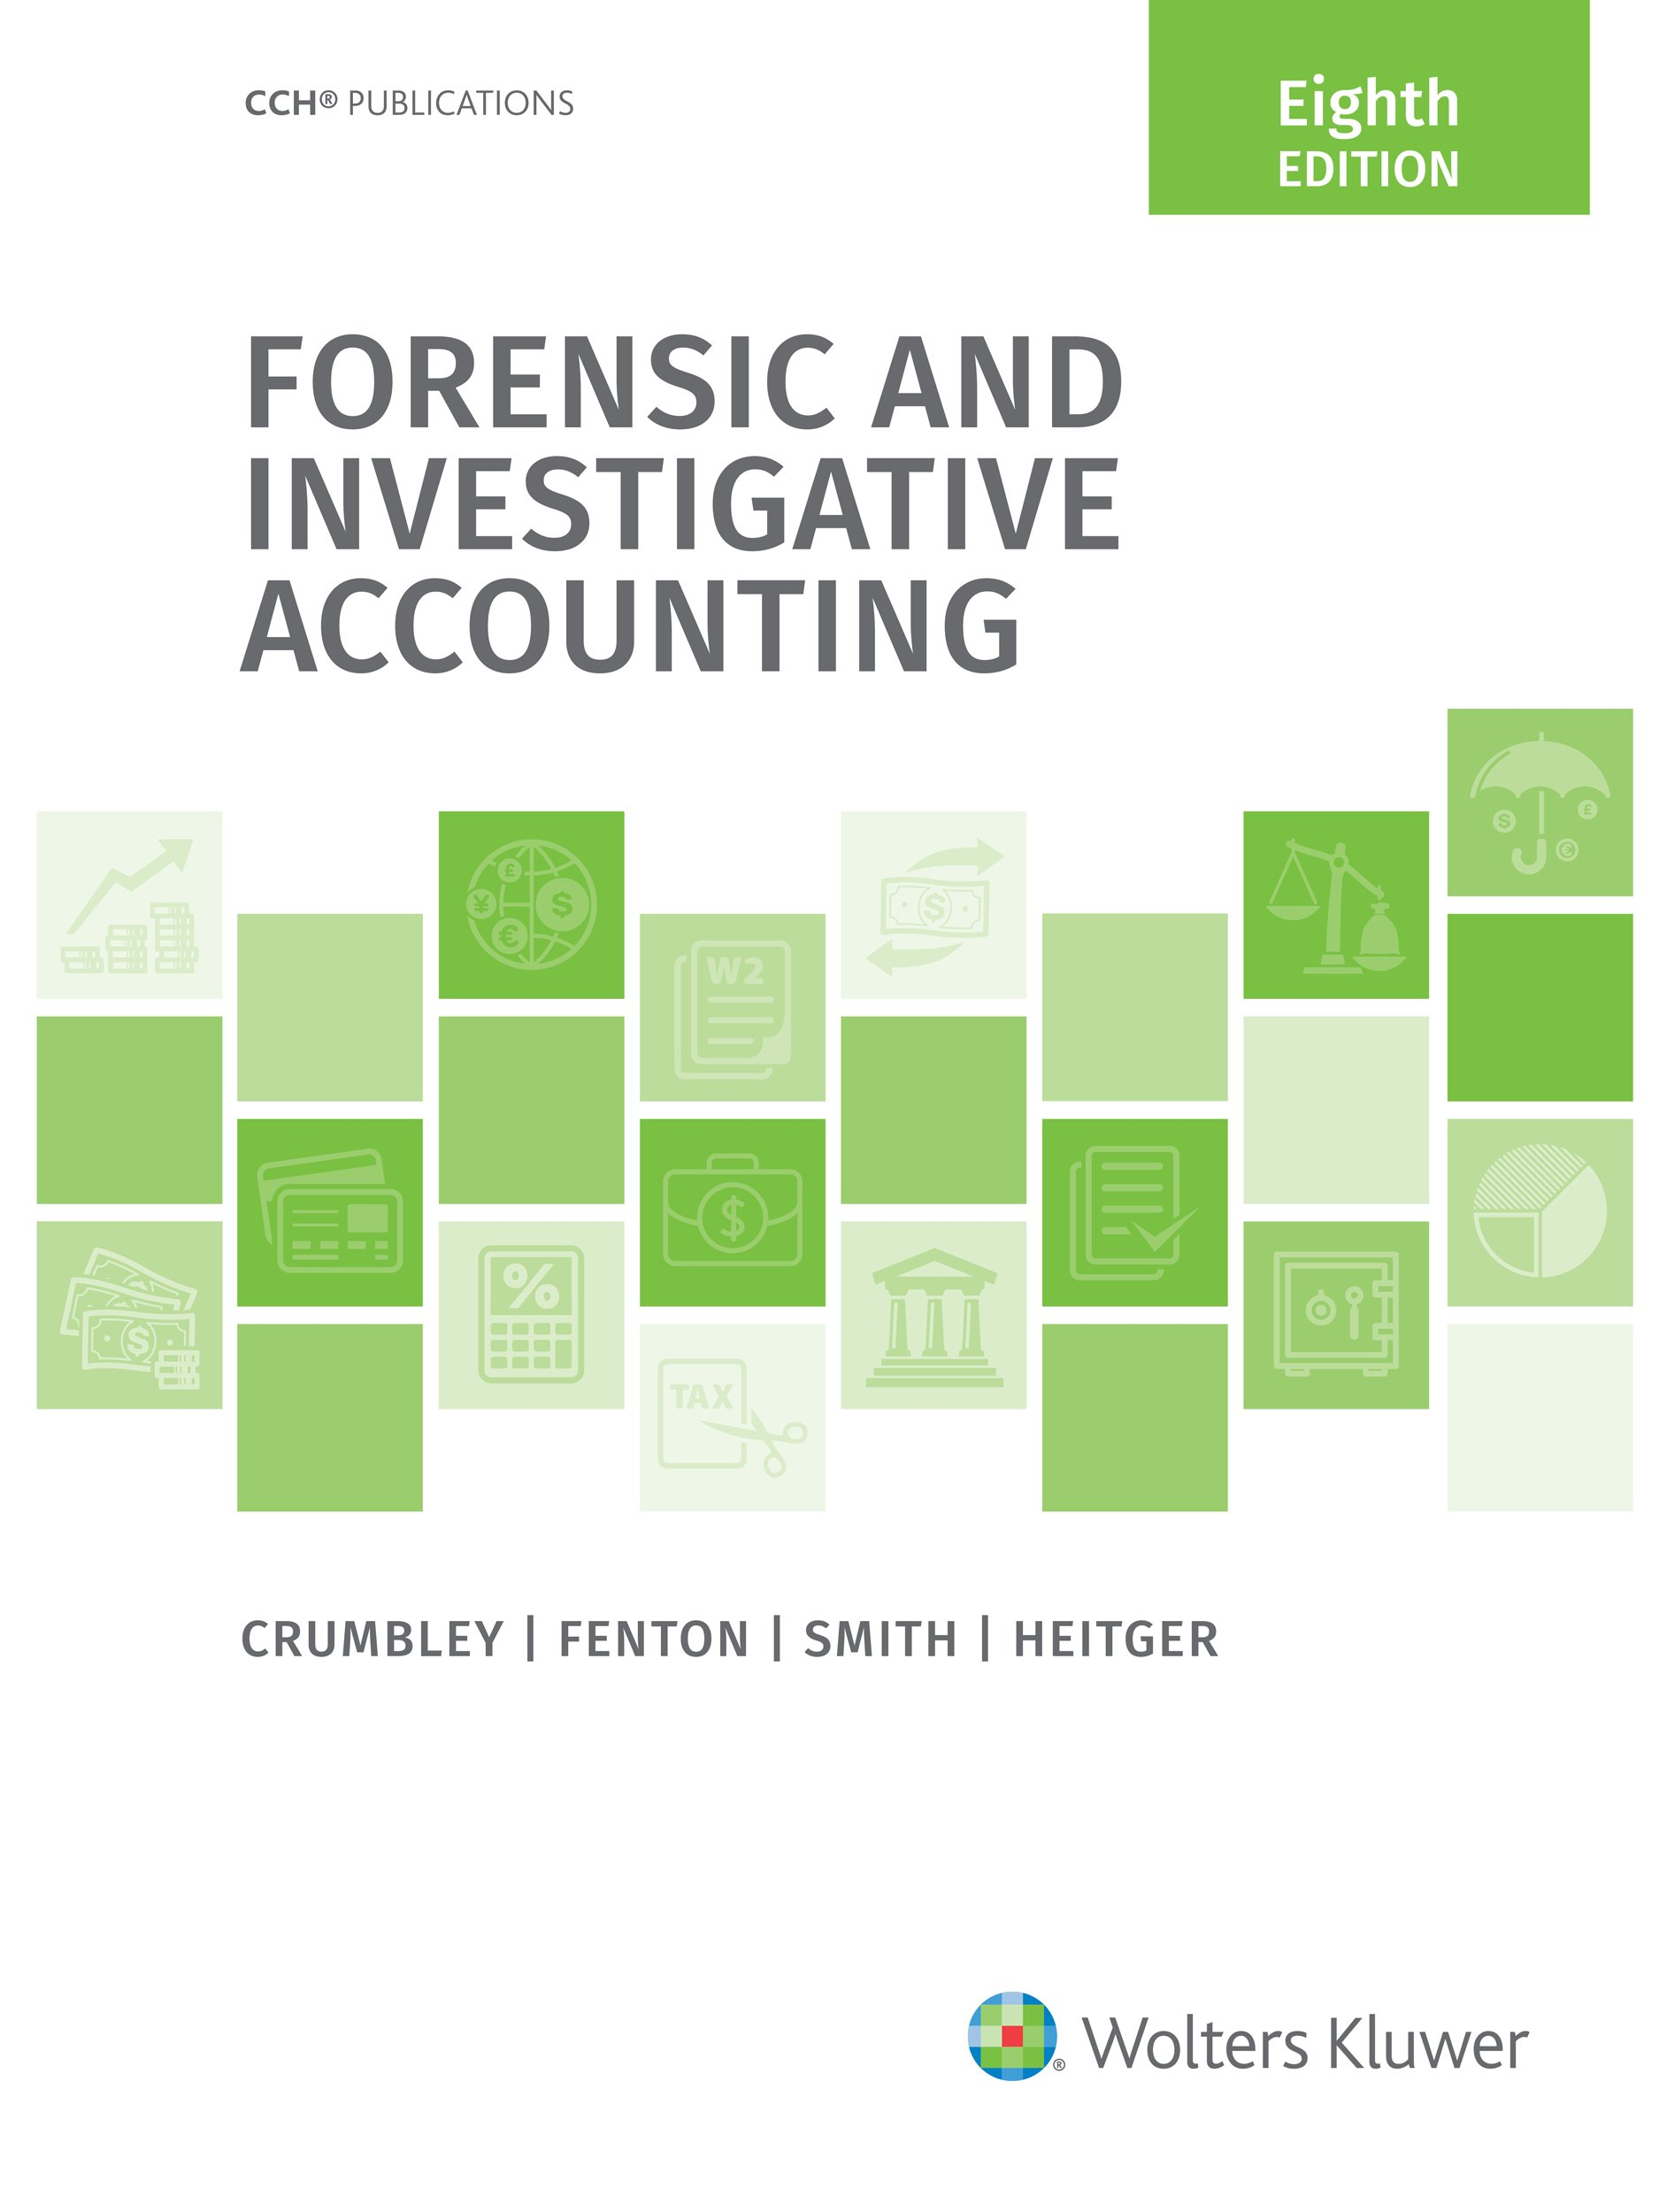 Download Forensic And Investigative Accounting (8th Edition) (English Edition) 